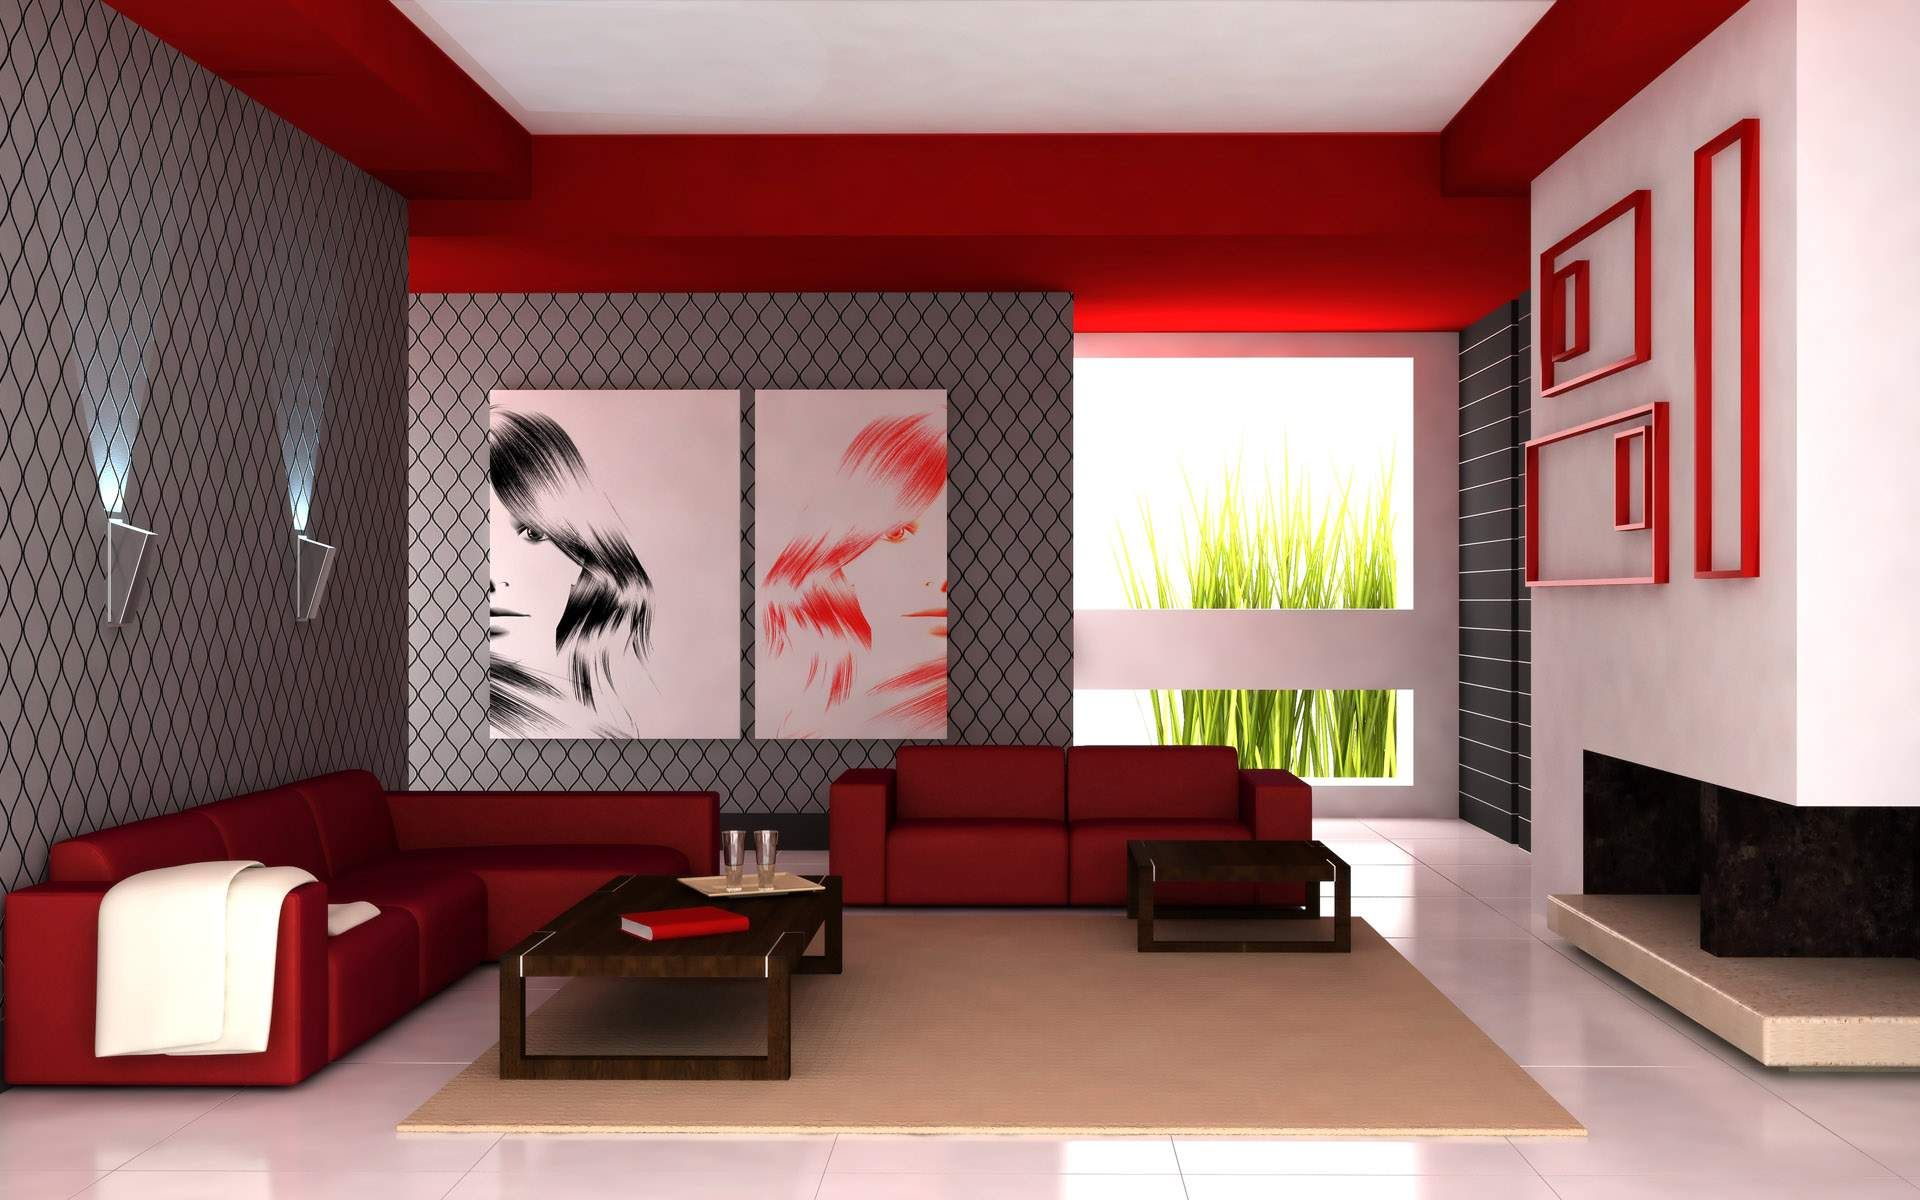 cool living room interior with flashy red color stylendesignscom - Living Room Interior